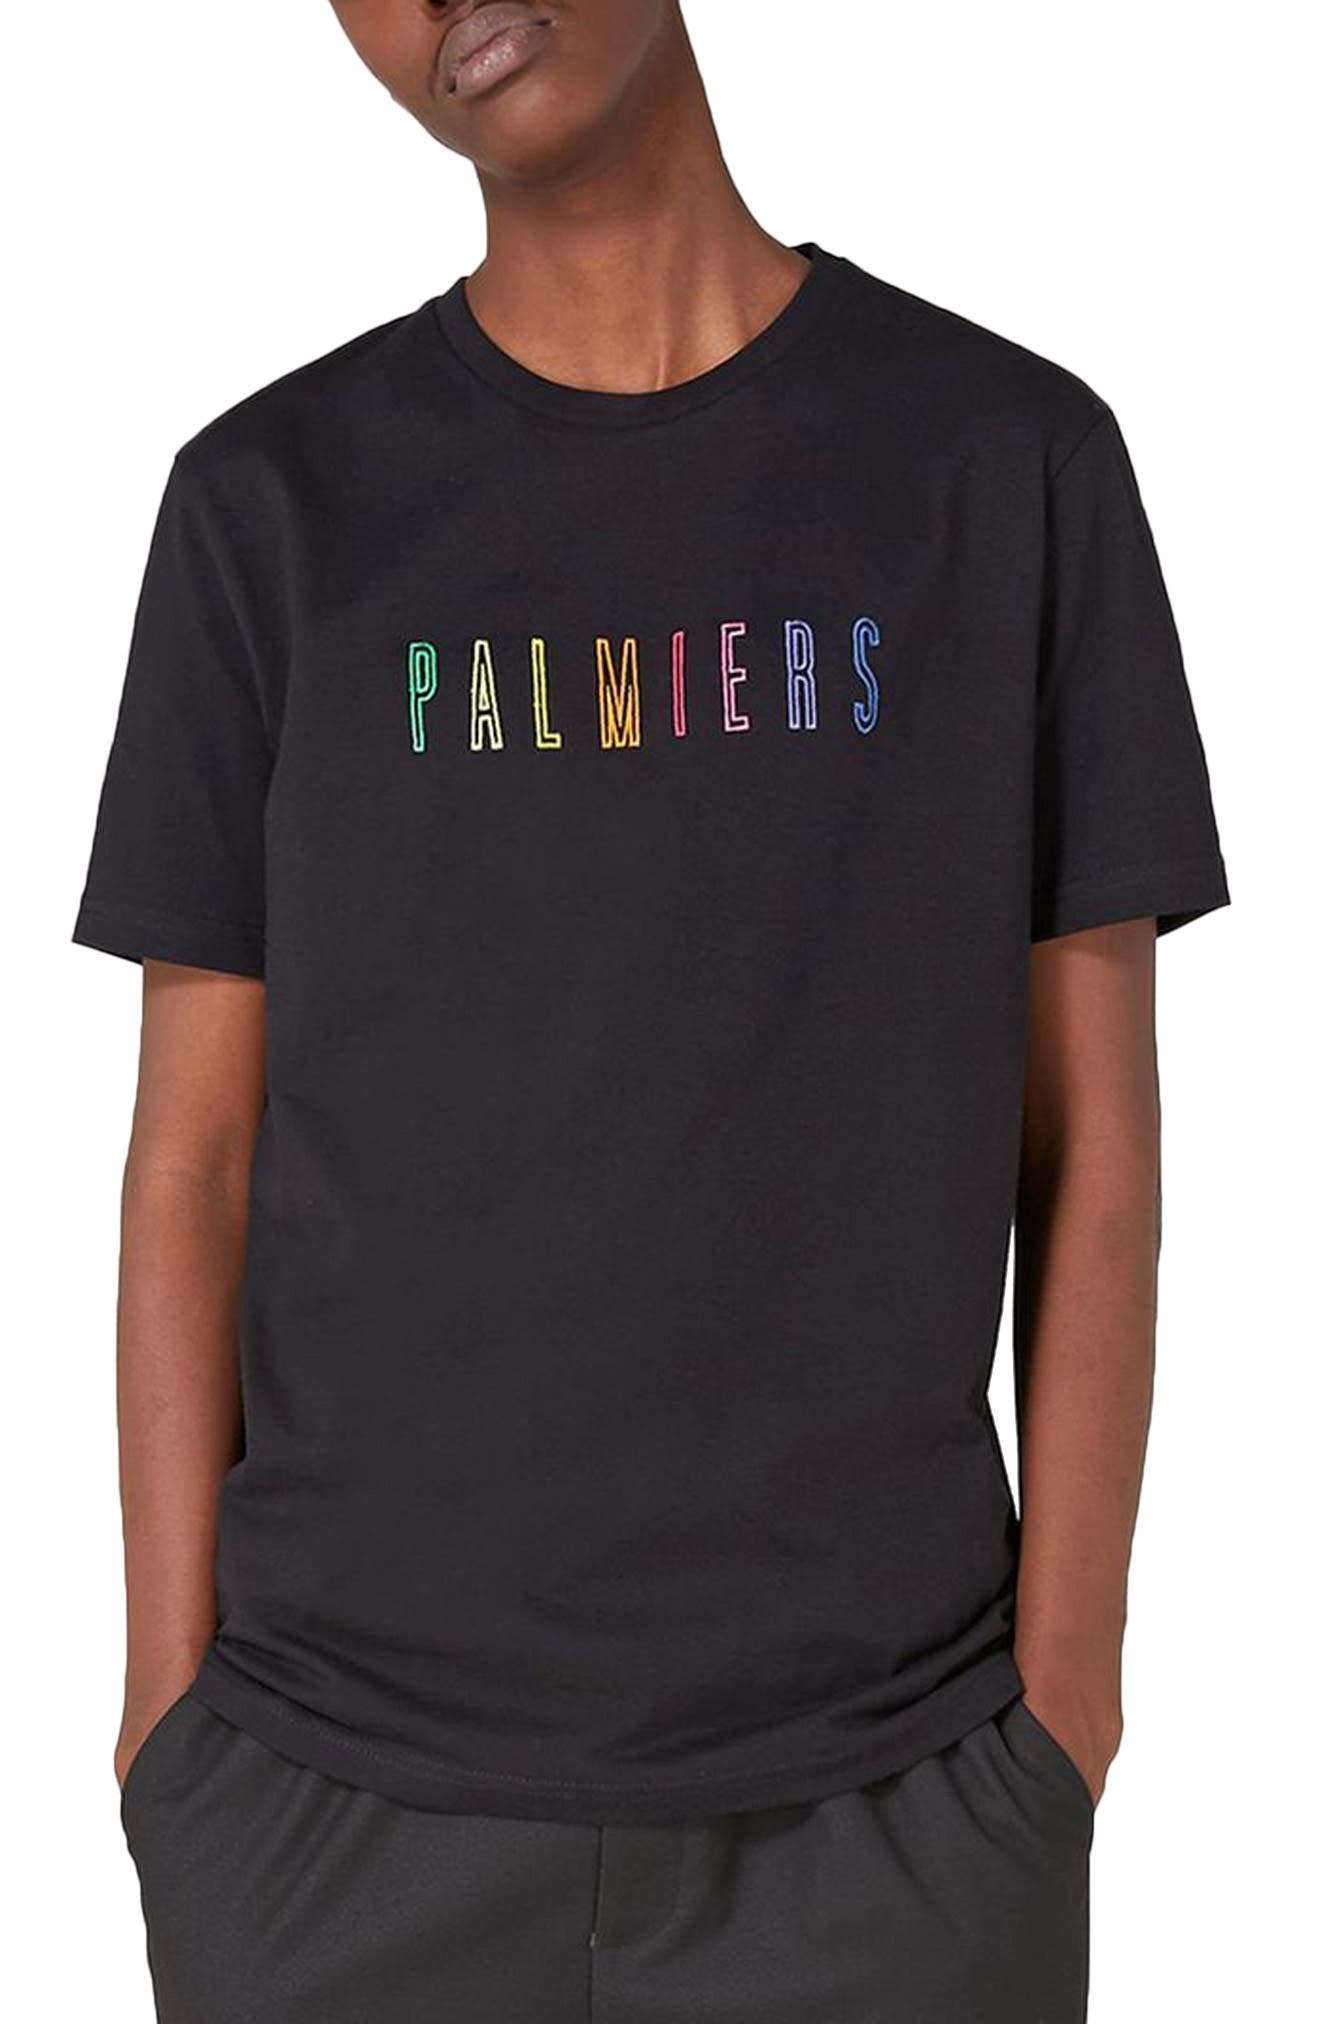 Main Image - Topman Palmiers Embroidered T-Shirt